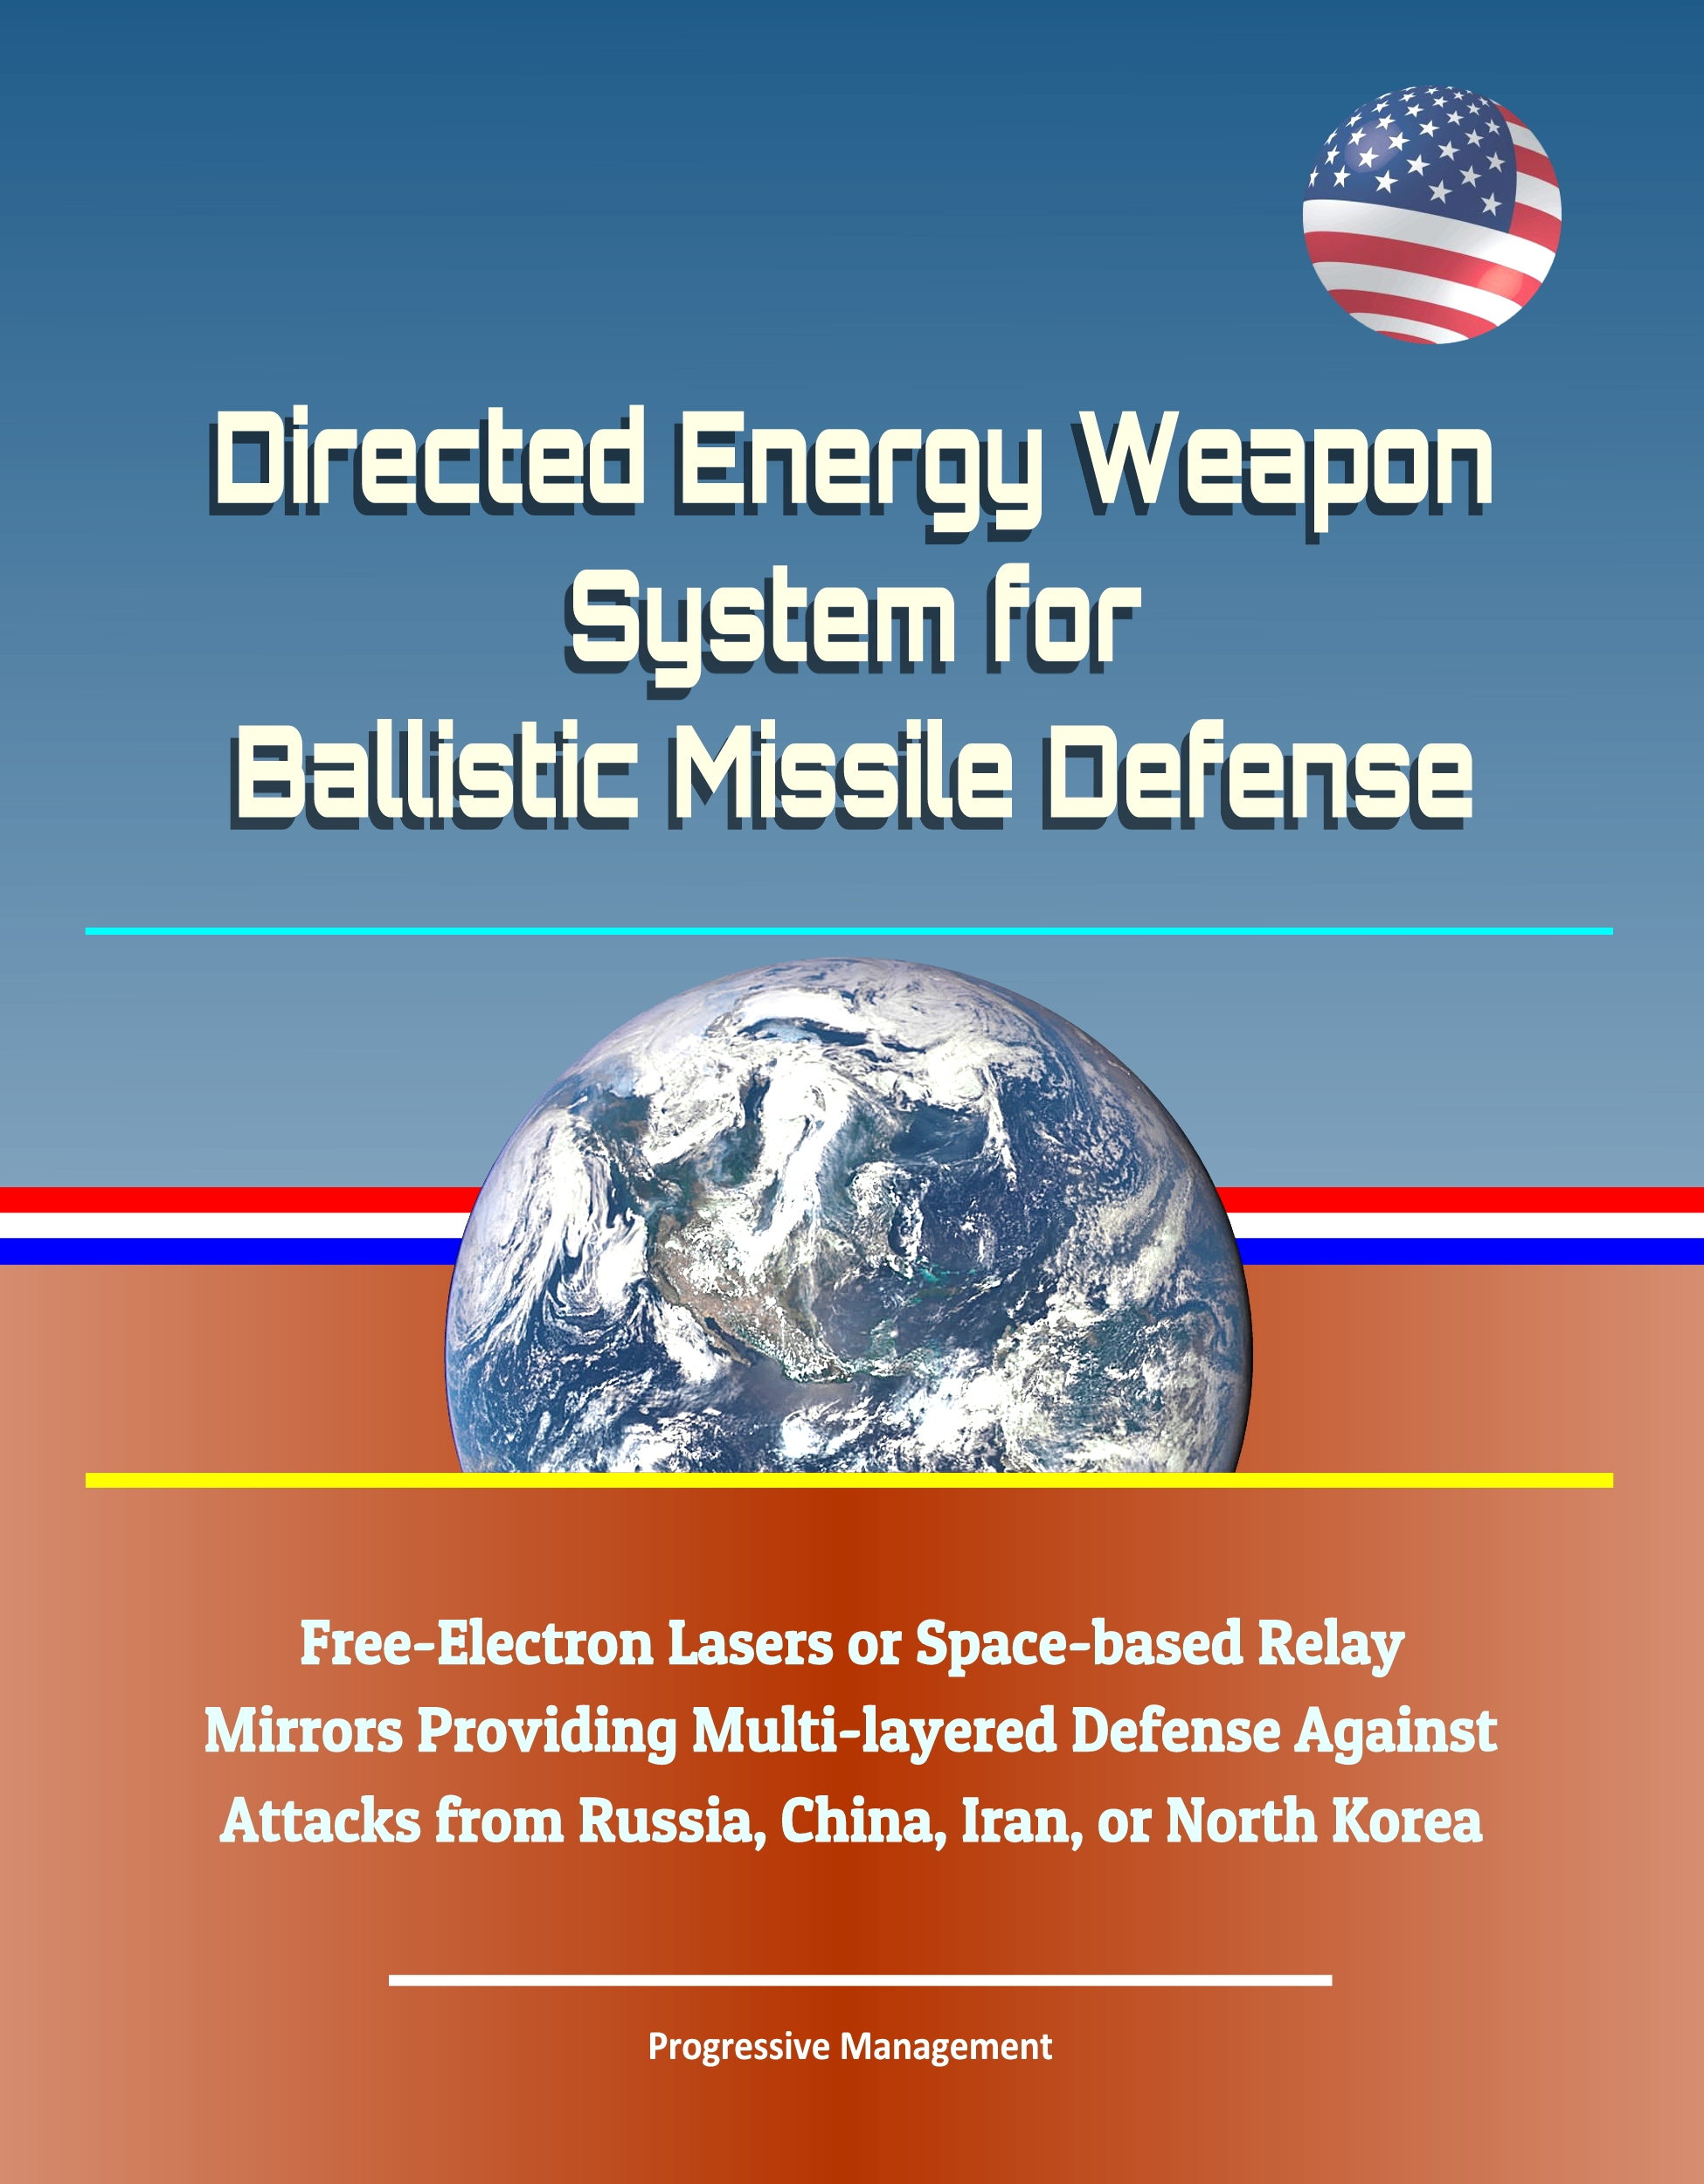 Directed Energy Weapon System for Ballistic Missile Defense - Free-Electron  Lasers or Space-based Relay Mirrors Providing Multi-layered Defense